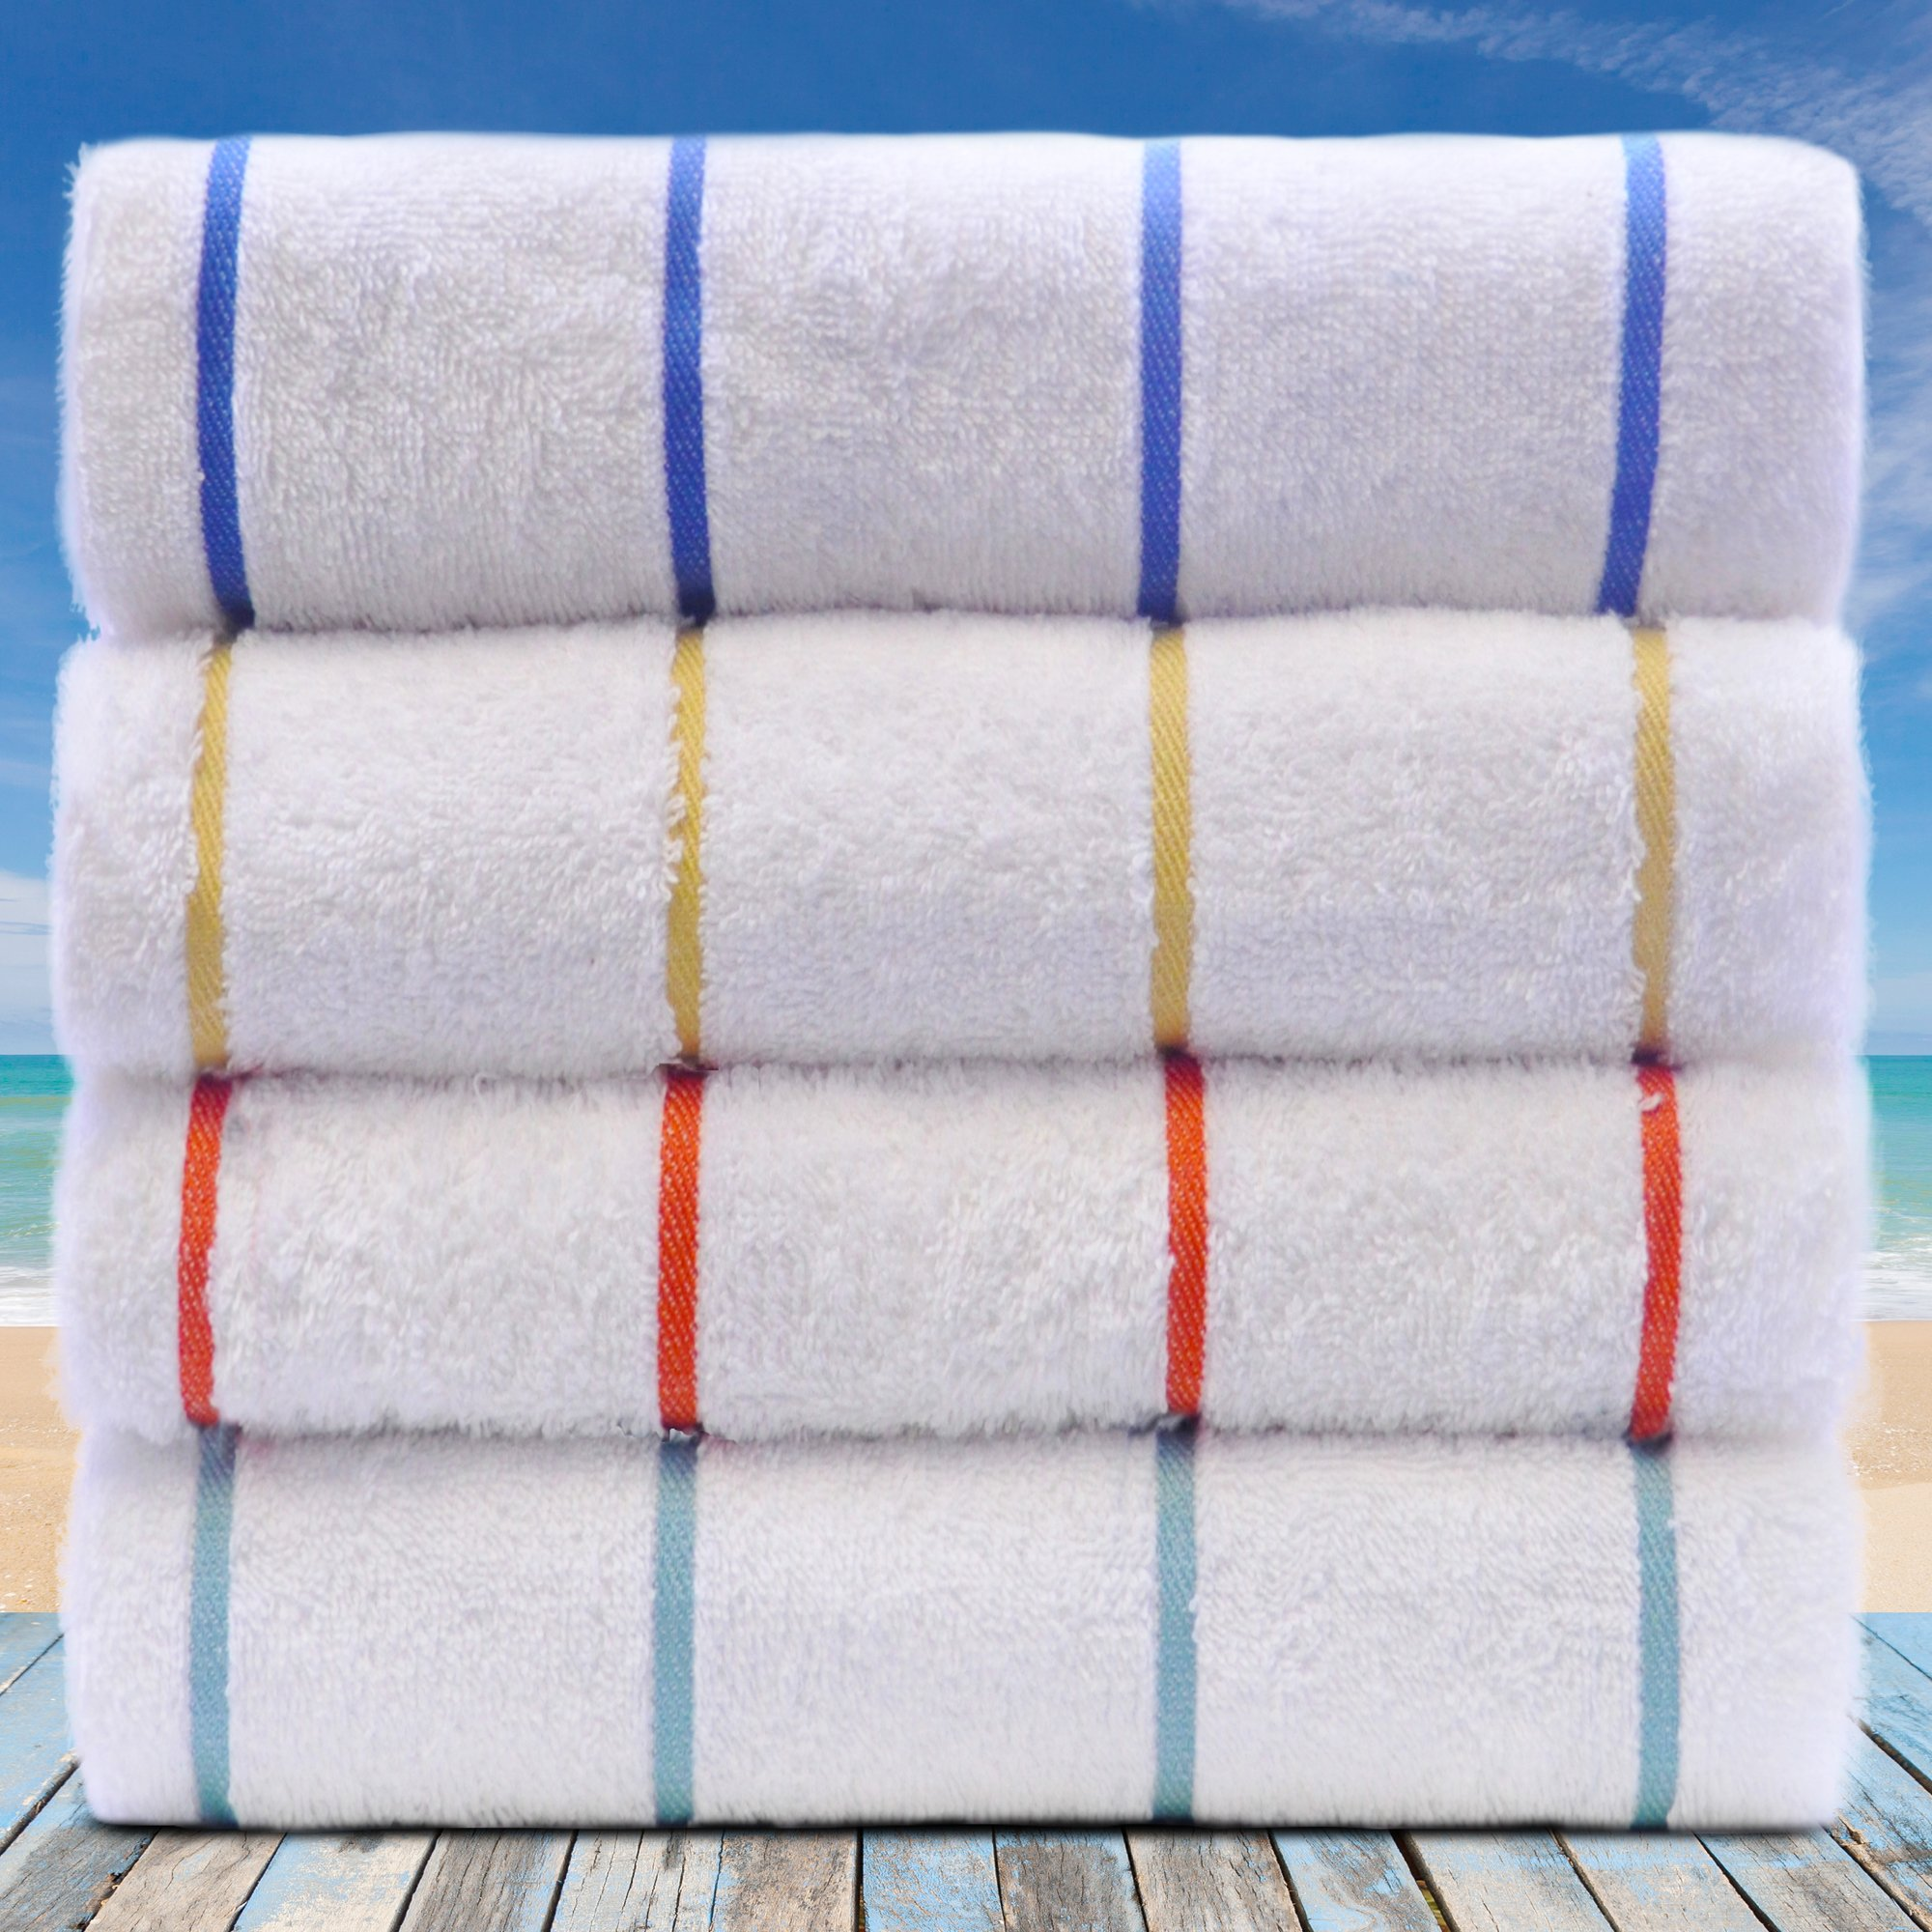 BC BARE COTTON Luxury Hotel & Spa Towel Turkish Cotton Pool Beach Towels - Mix Color - Striped Large Pool-Beach Towel - Set of 4